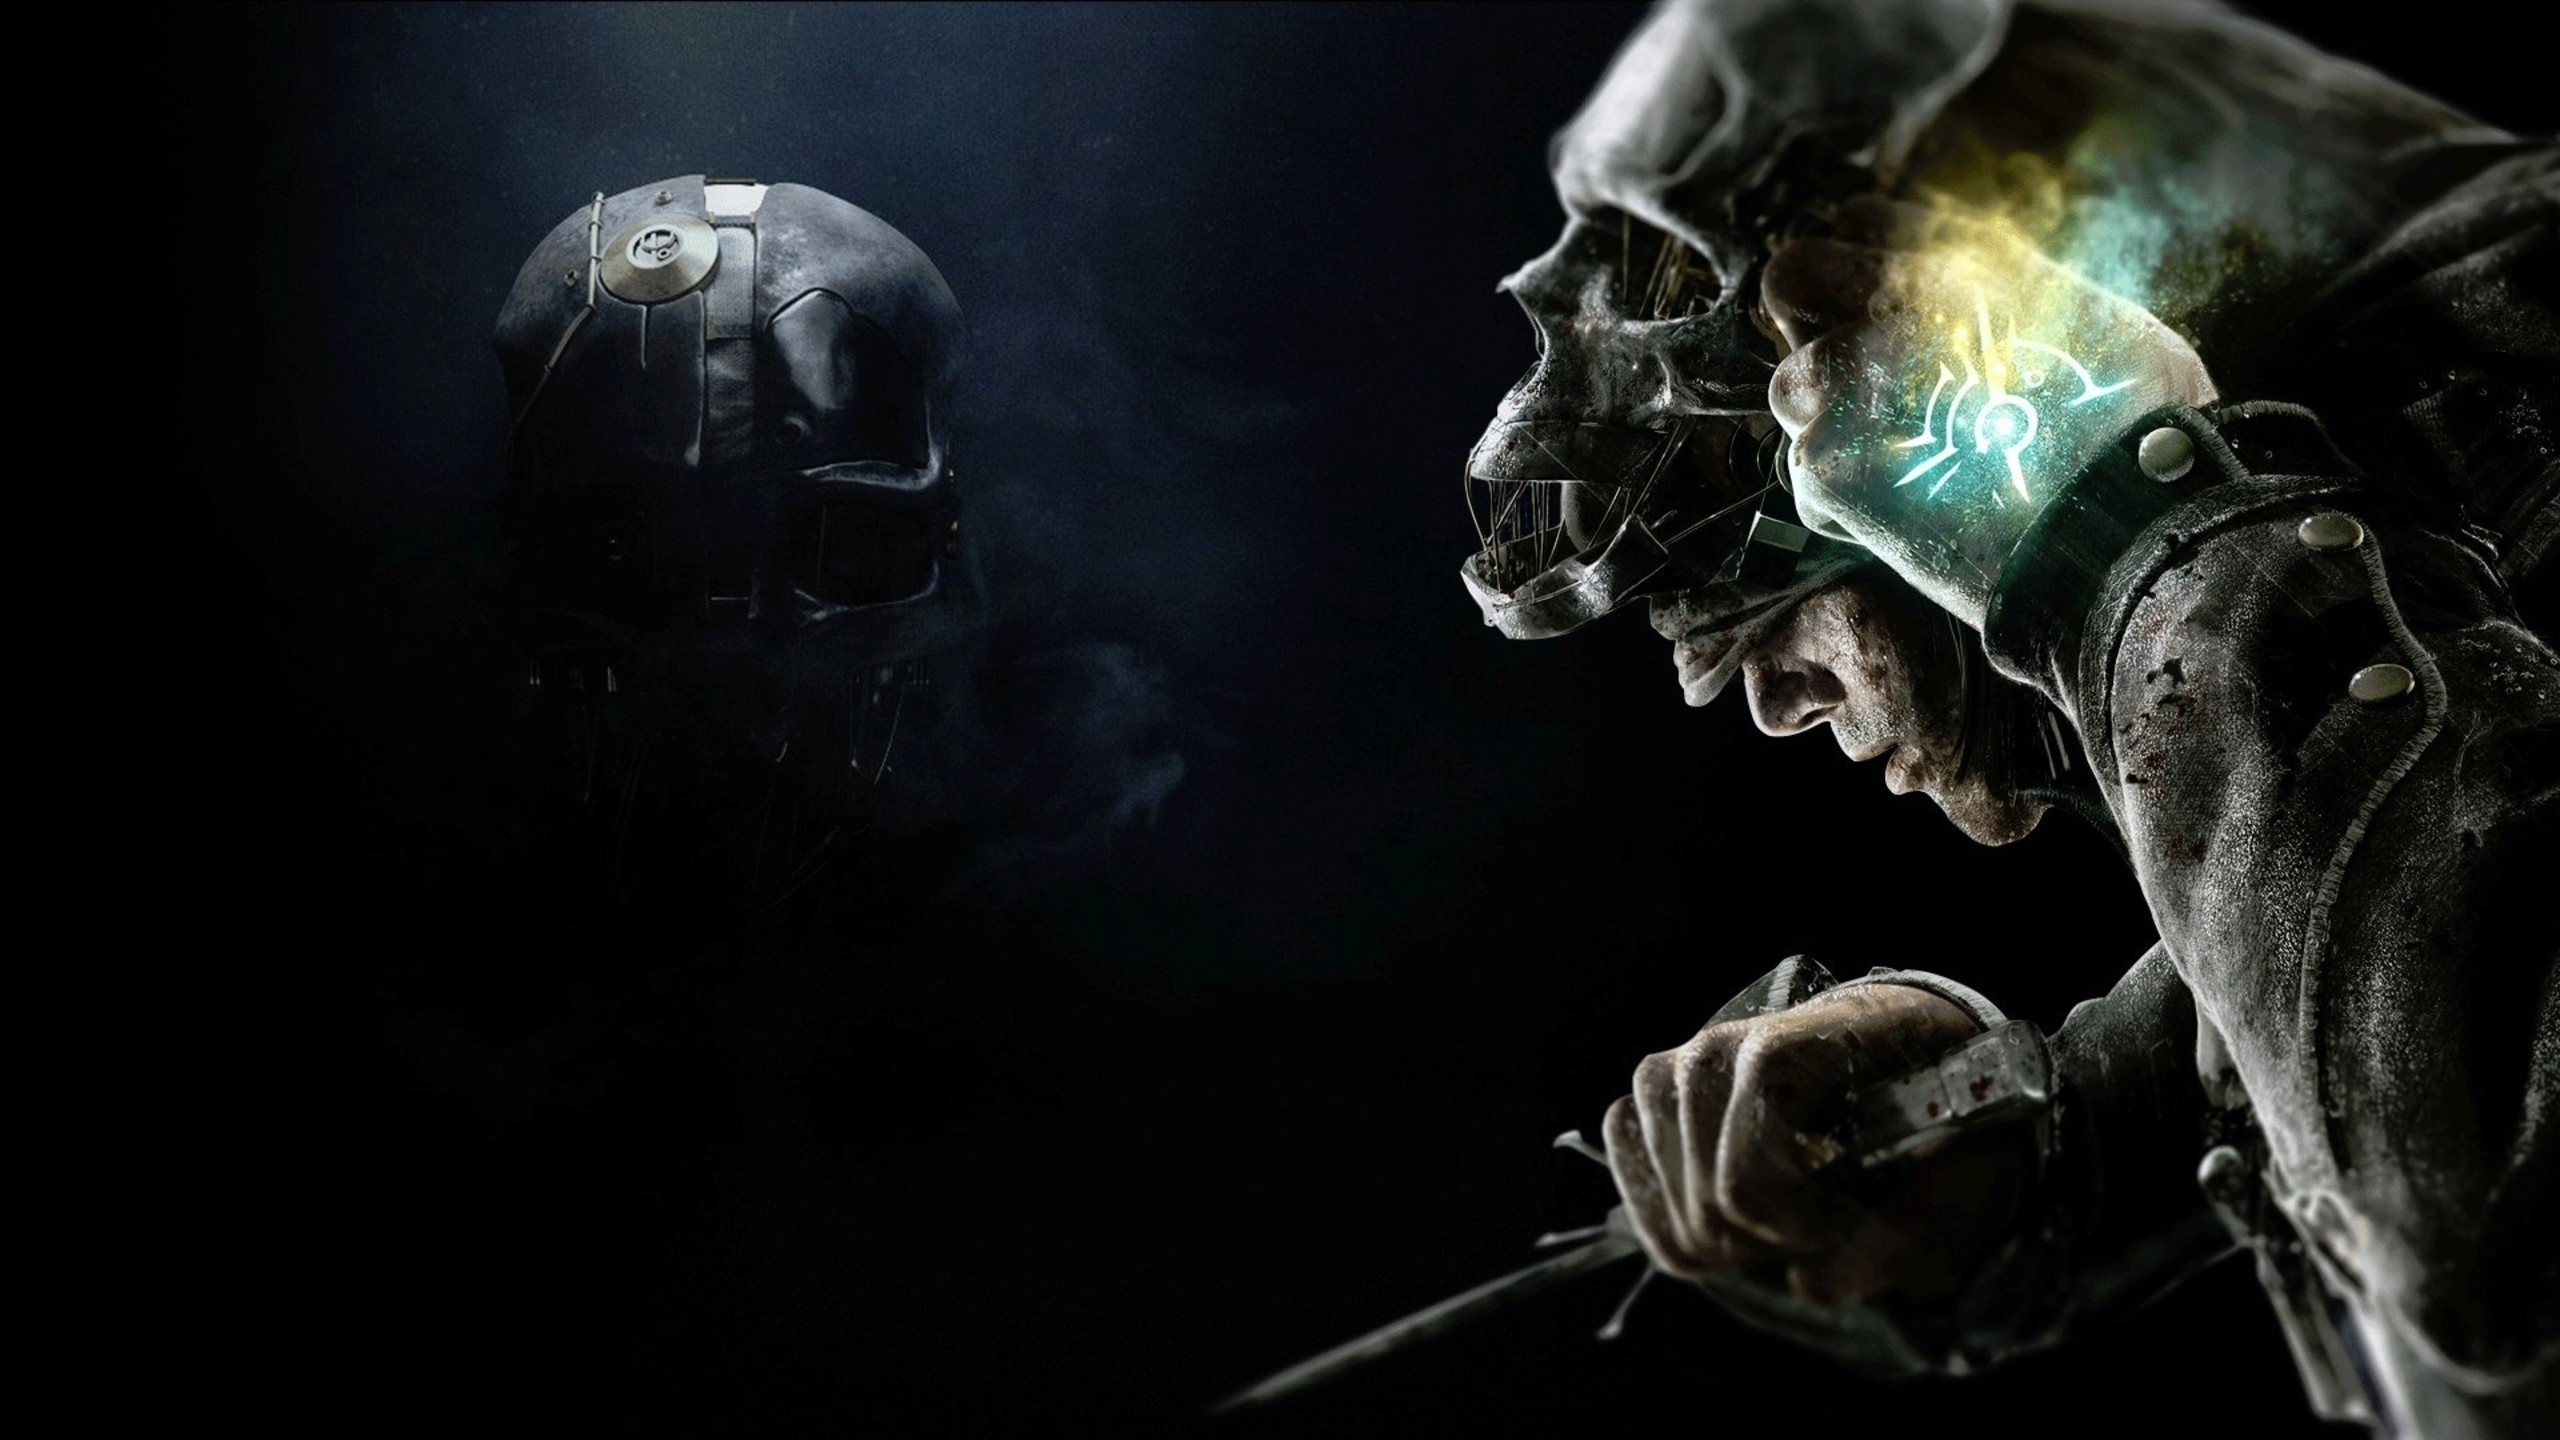 dishonored-2-pc-game-wallpaper.jpg